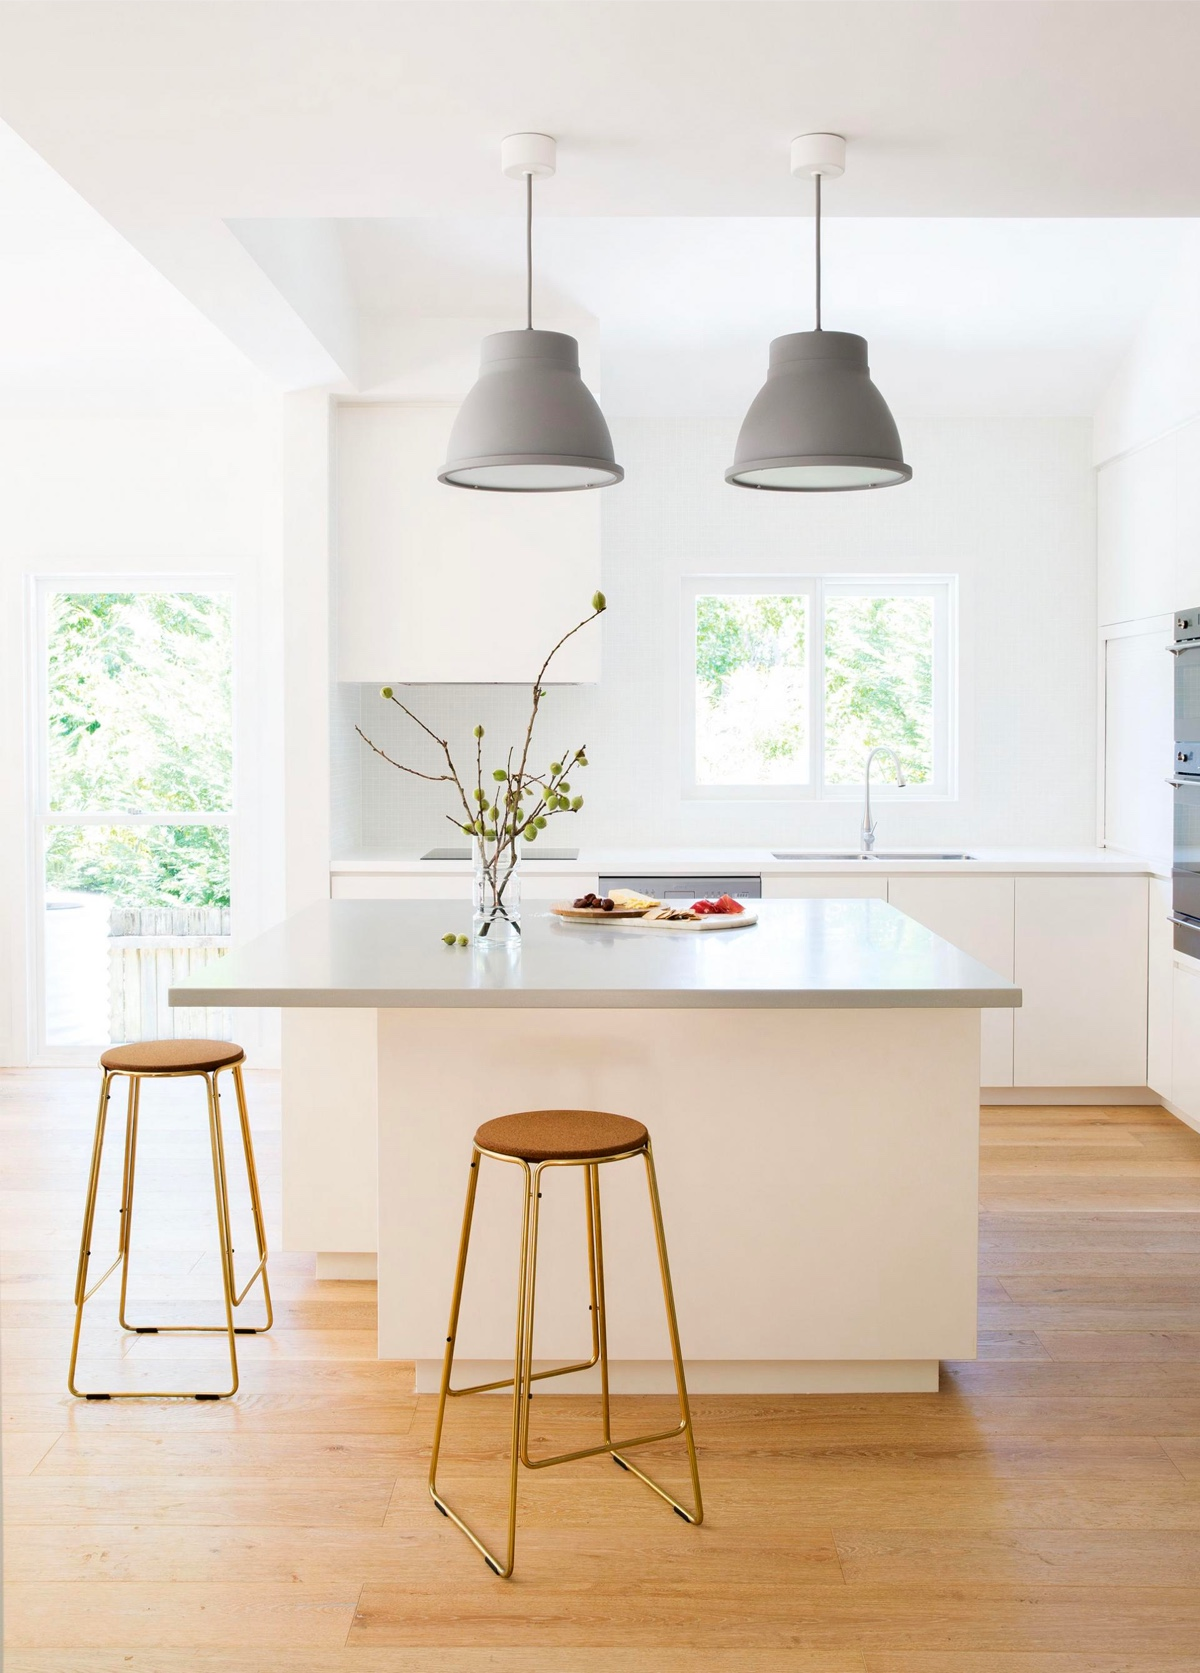 Unique Kitchen Pendant Lights You Can Buy Right Now - Pendant lighting for small kitchen